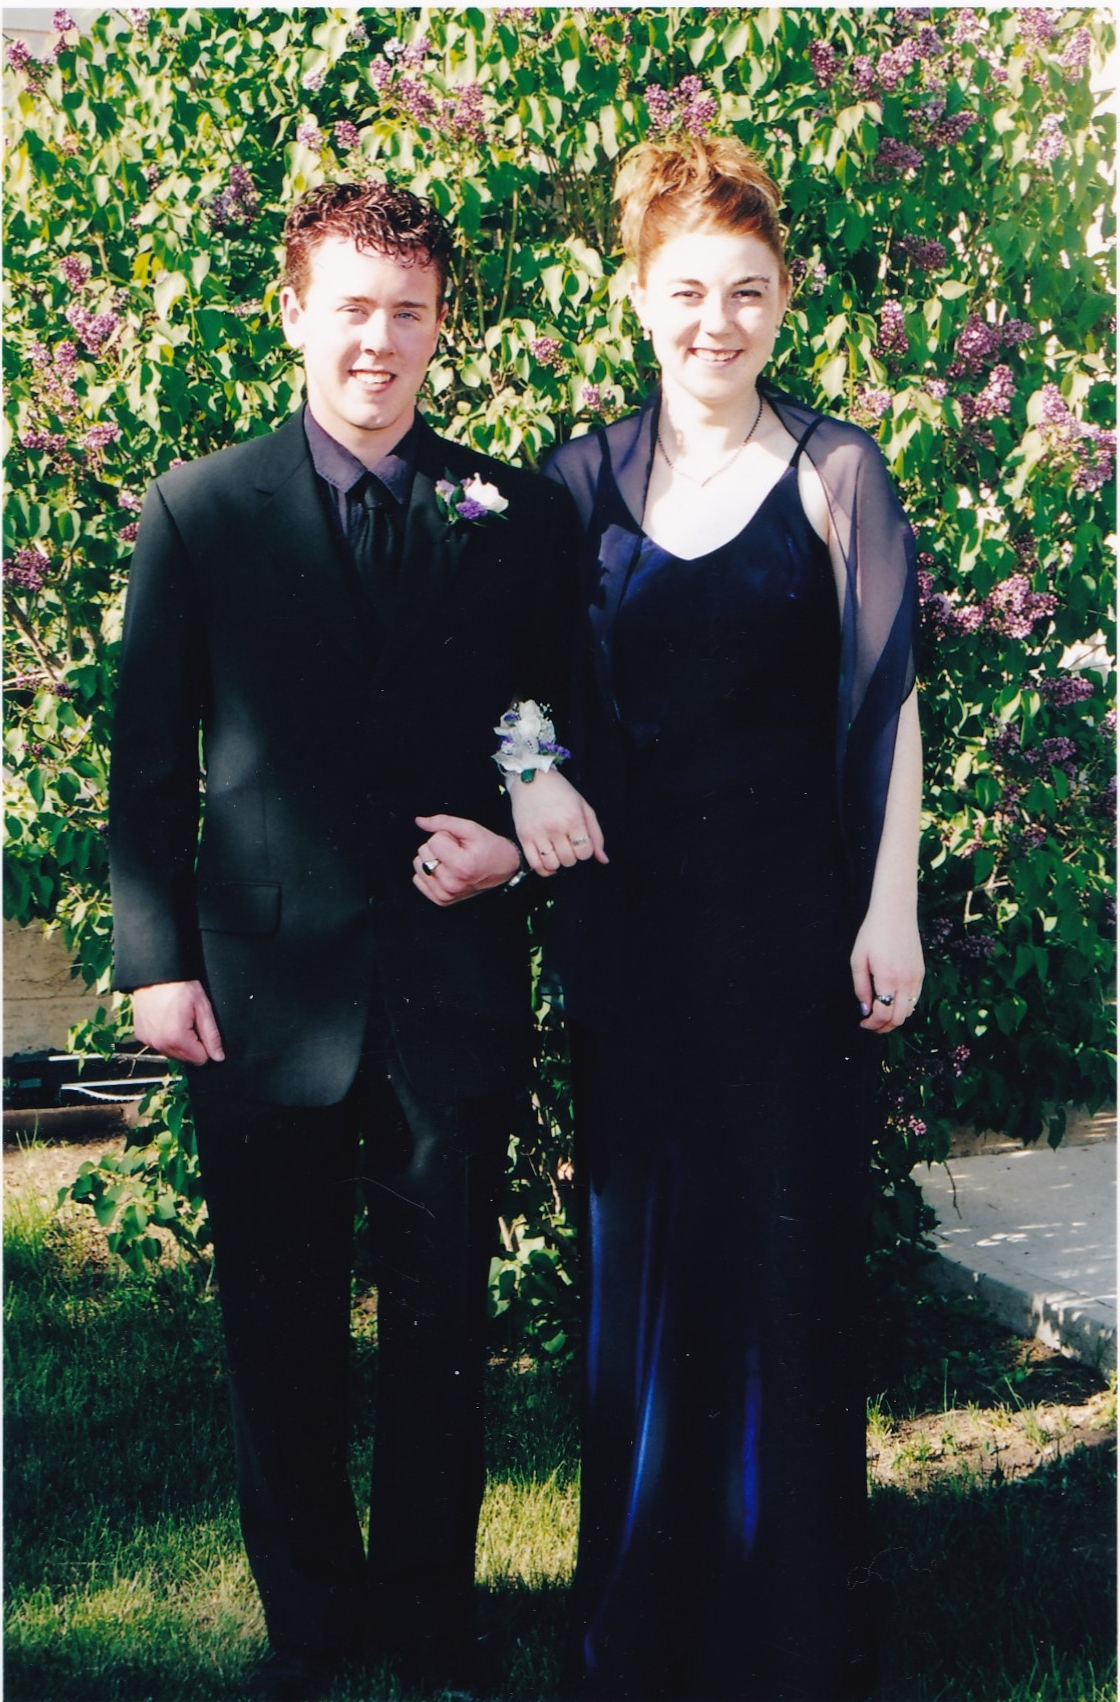 Graduation photographer a full length photoo f my date and I standing in front of a purple lilac bush. Our faces are in the sun and our bodies are in shadow which resulted in overexposure to our faces and underexposure to our bodies making my dress look black